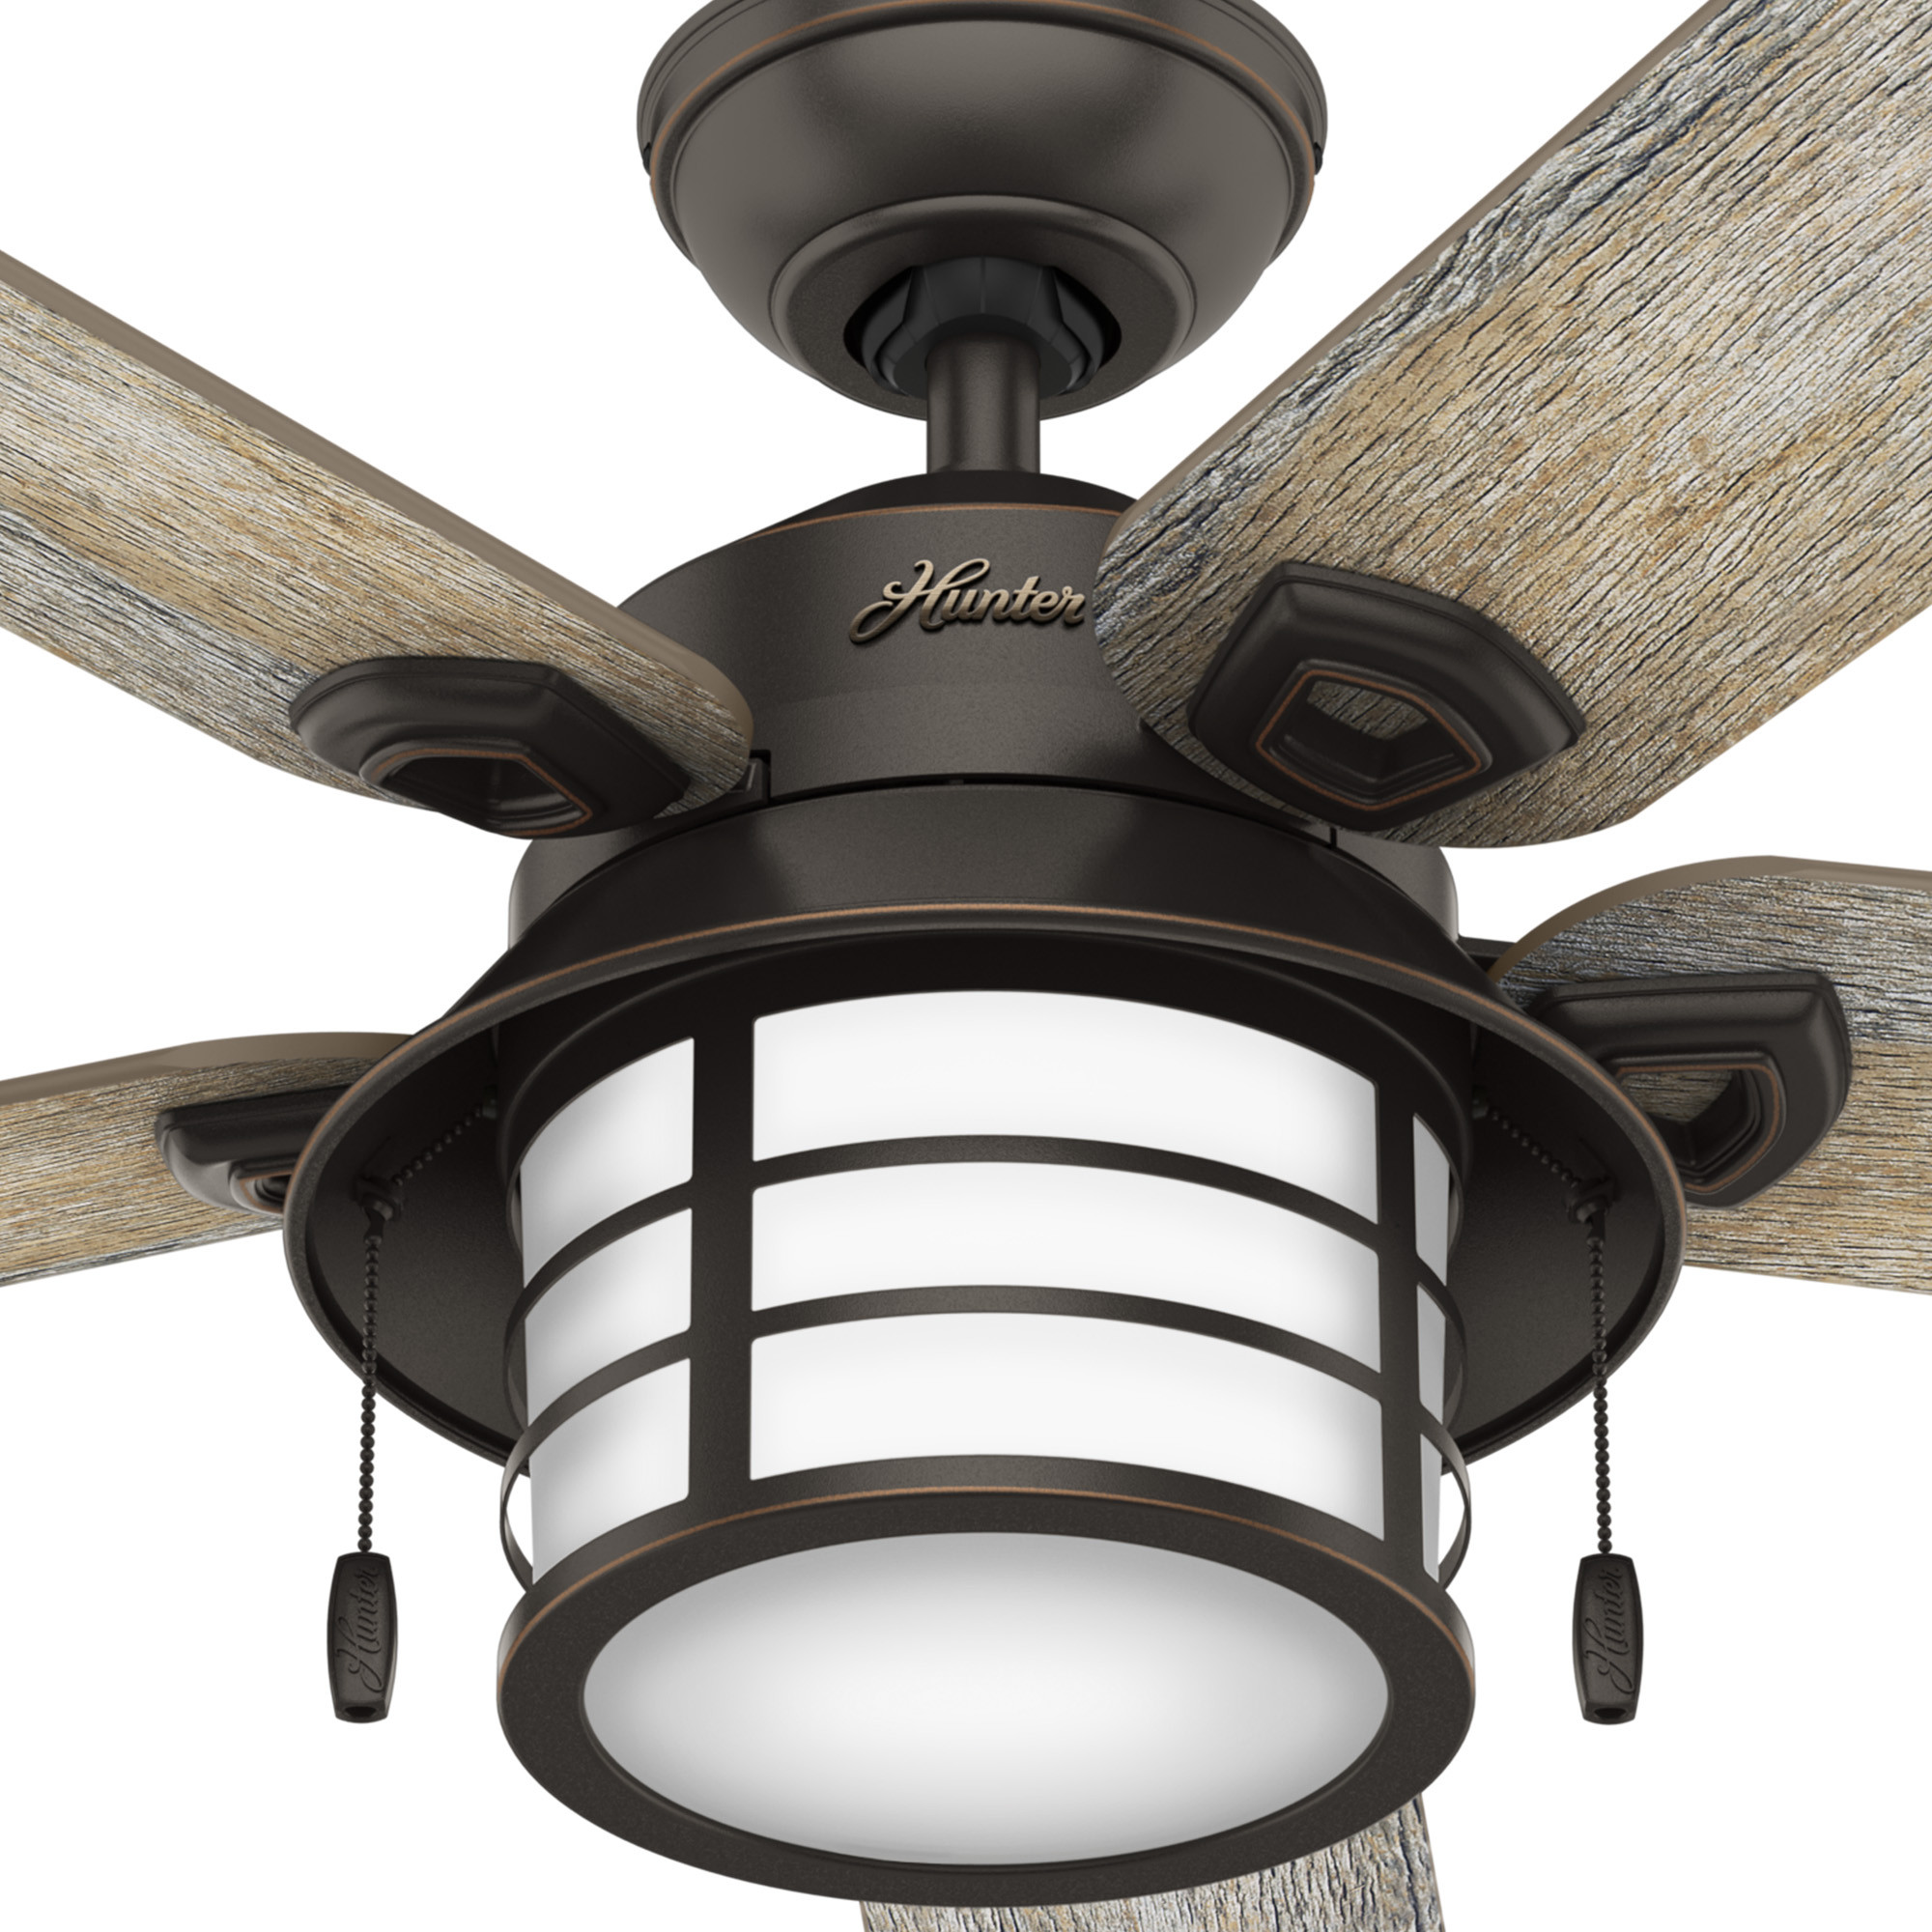 Hunter Outdoor Ceiling Fans With Lights: Hunter Key Biscayne Outdoor With Light 54 Inch Ceiling Fan